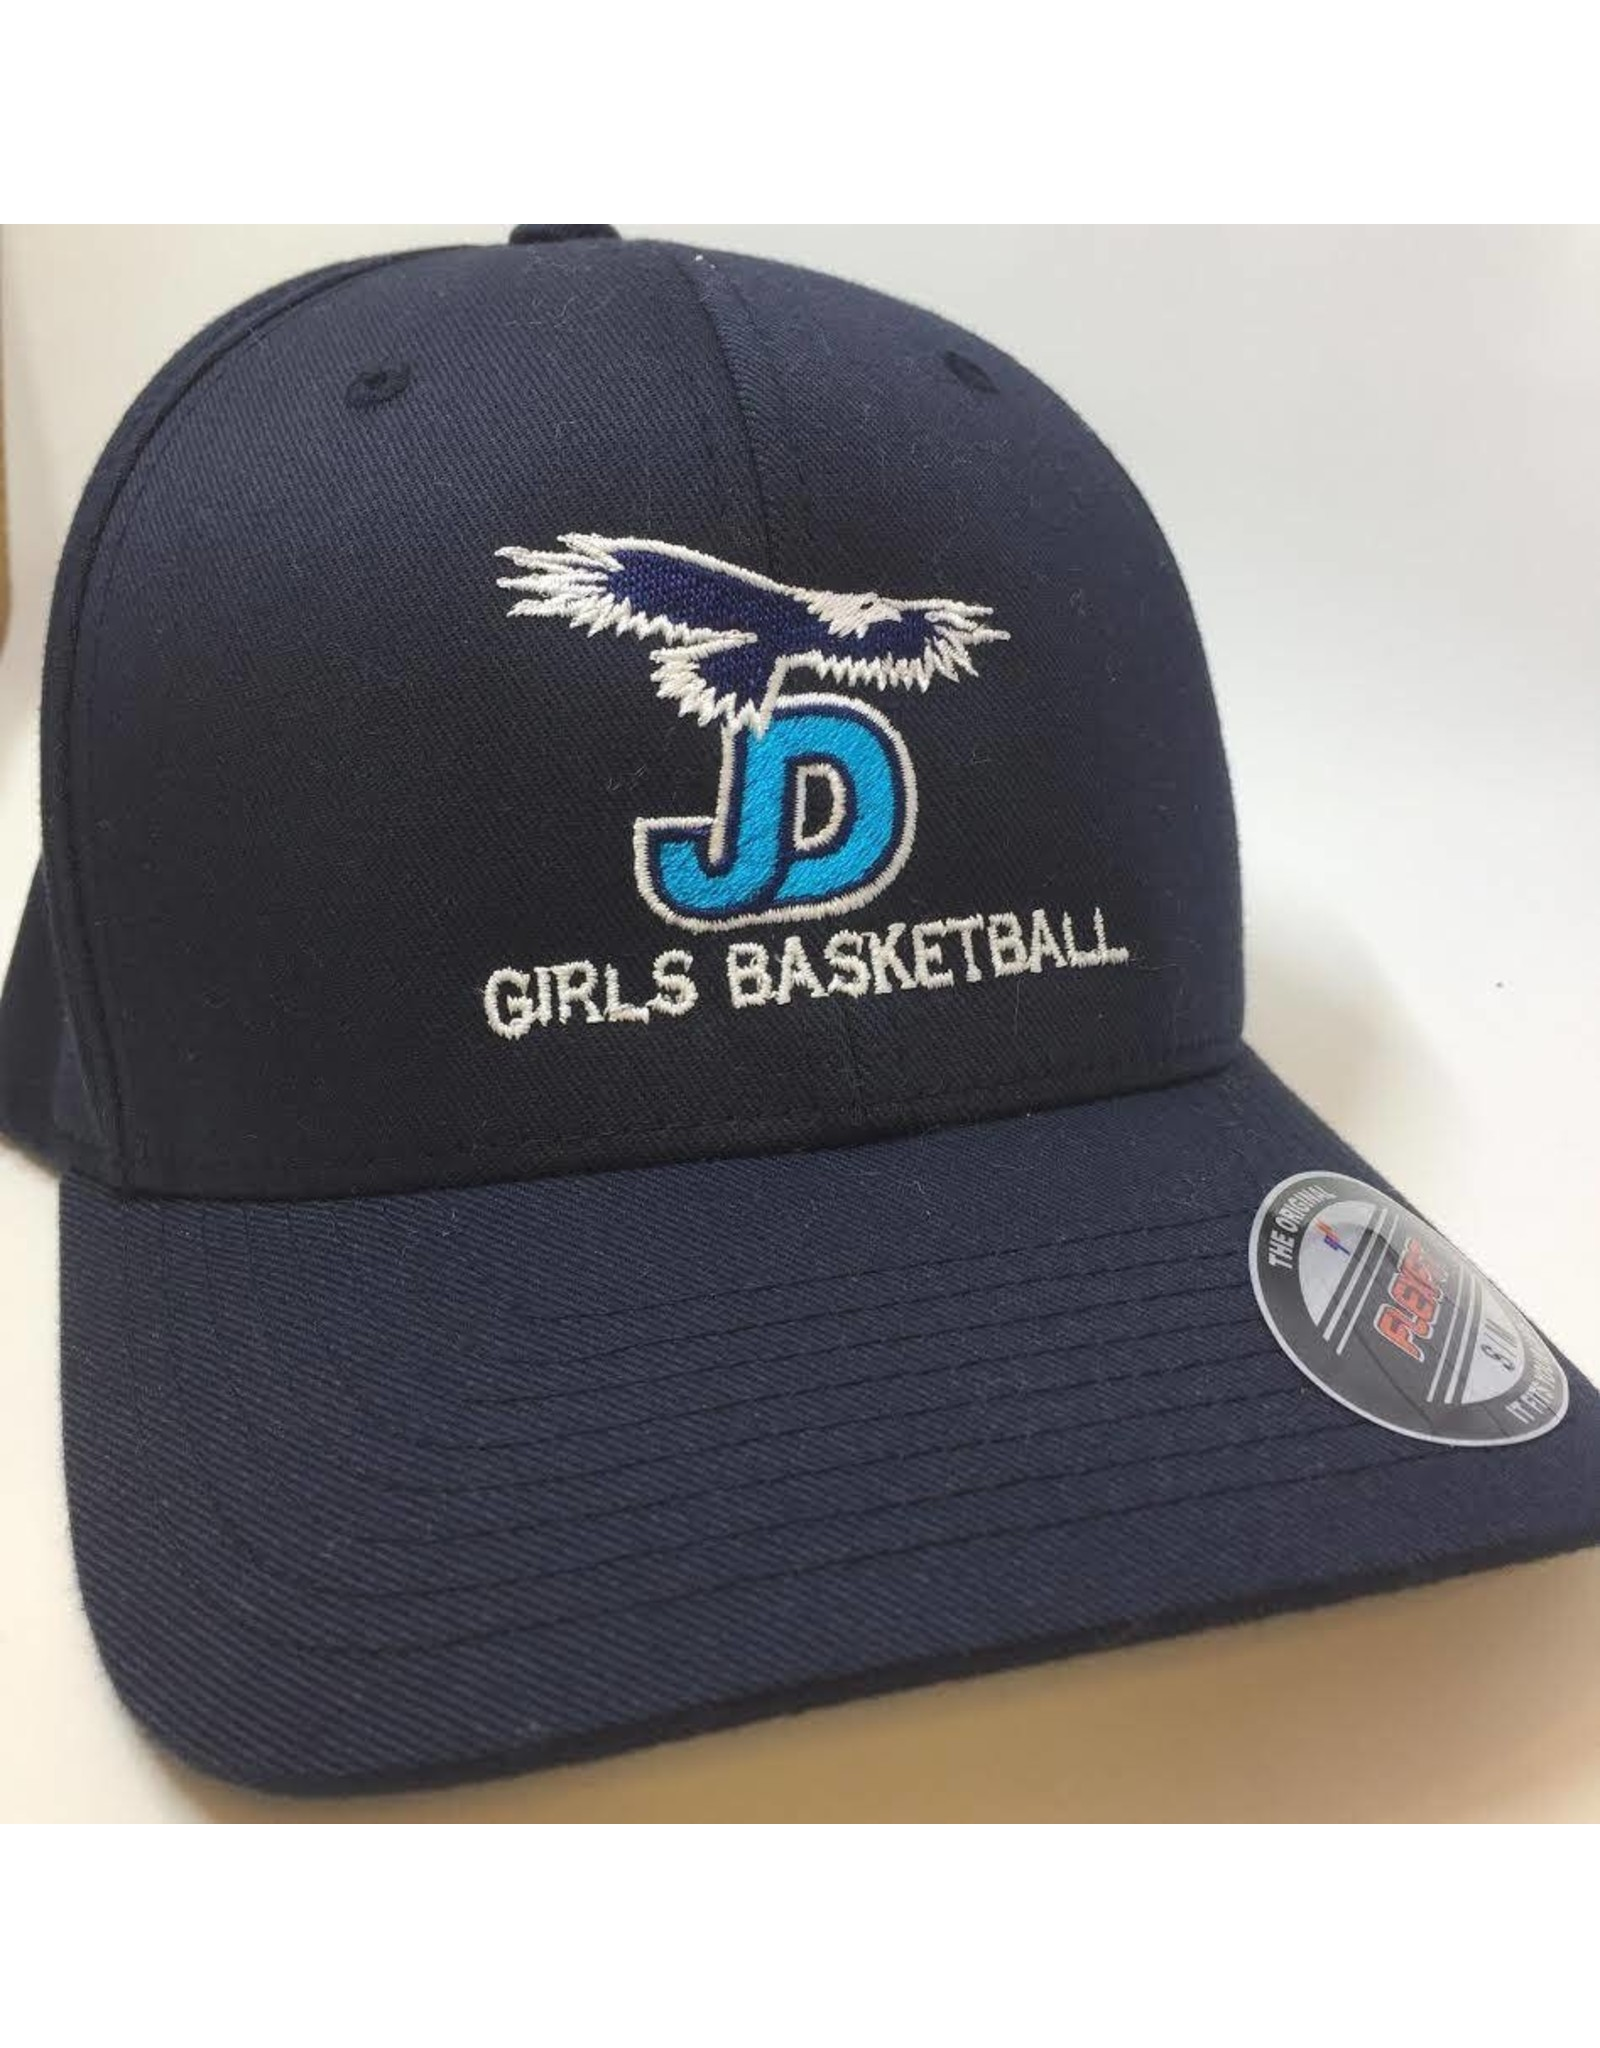 NON-UNIFORM Navy Girls Basketball Embroidered Ball Cap